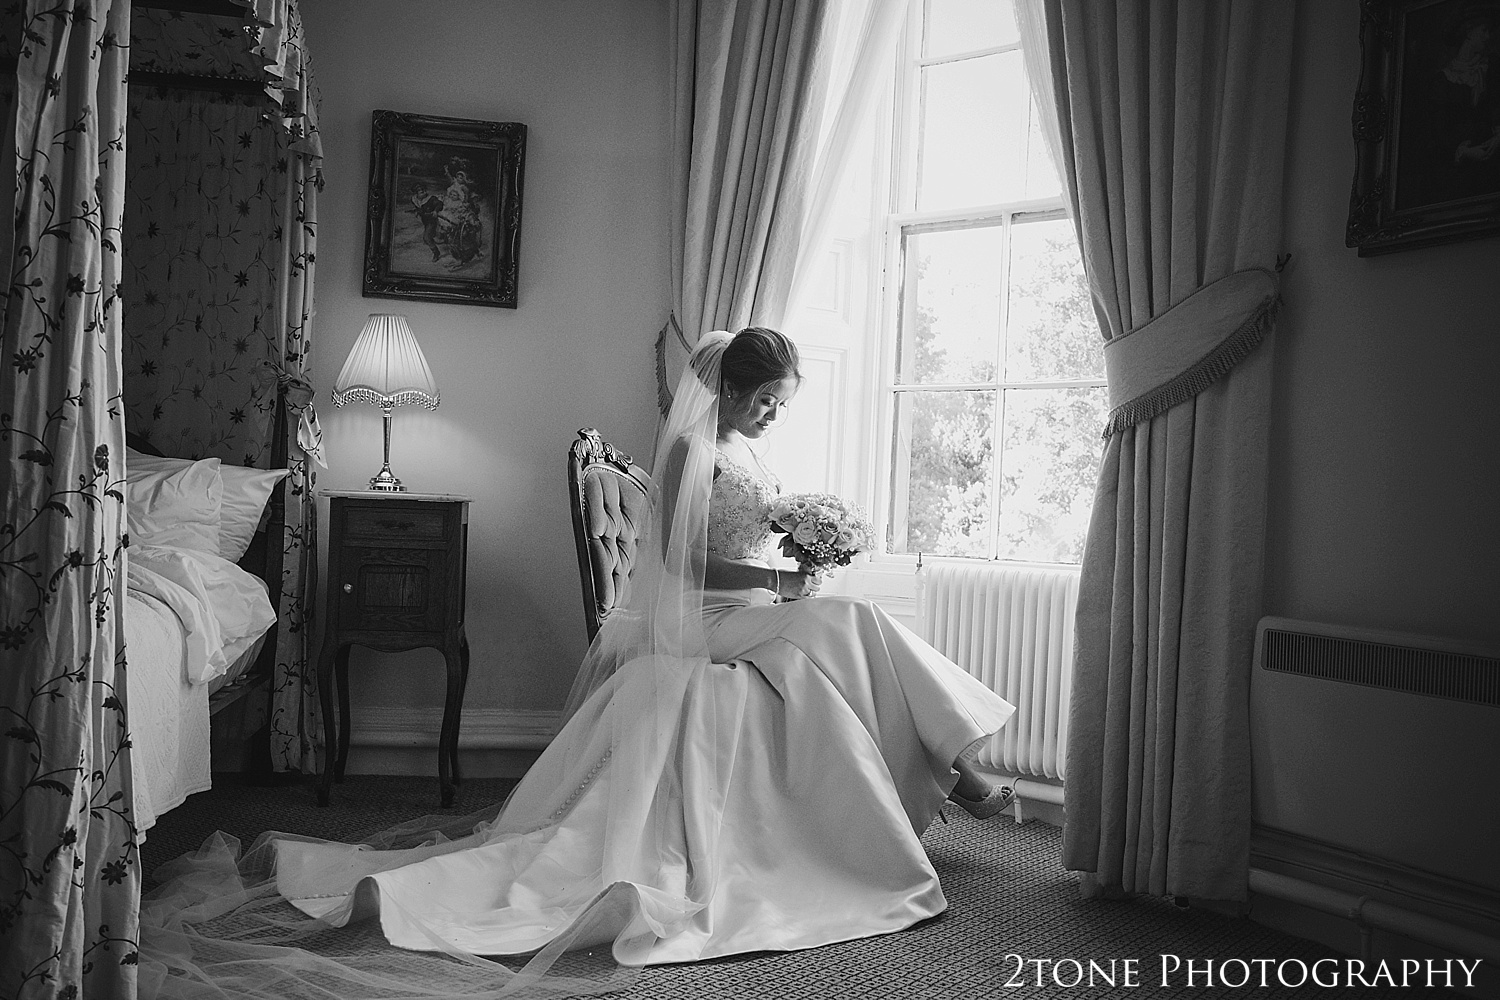 The bride by durham based husband and wife wedding photography duo 2tone Photography www.2tonephotography.co.uk